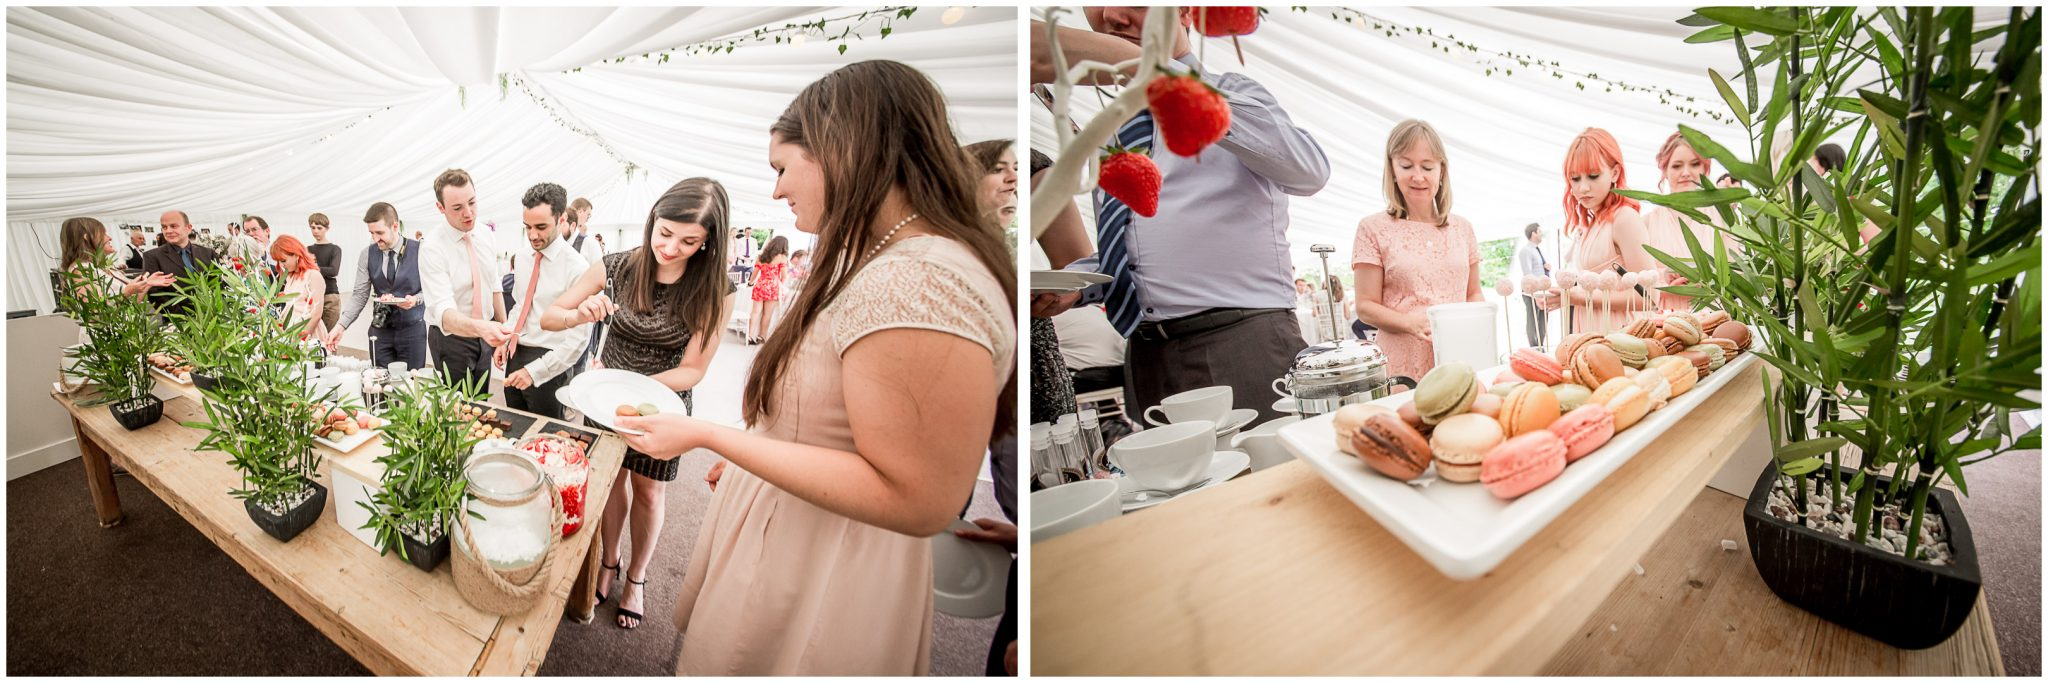 Guests attack the dessert station at the end of the meal